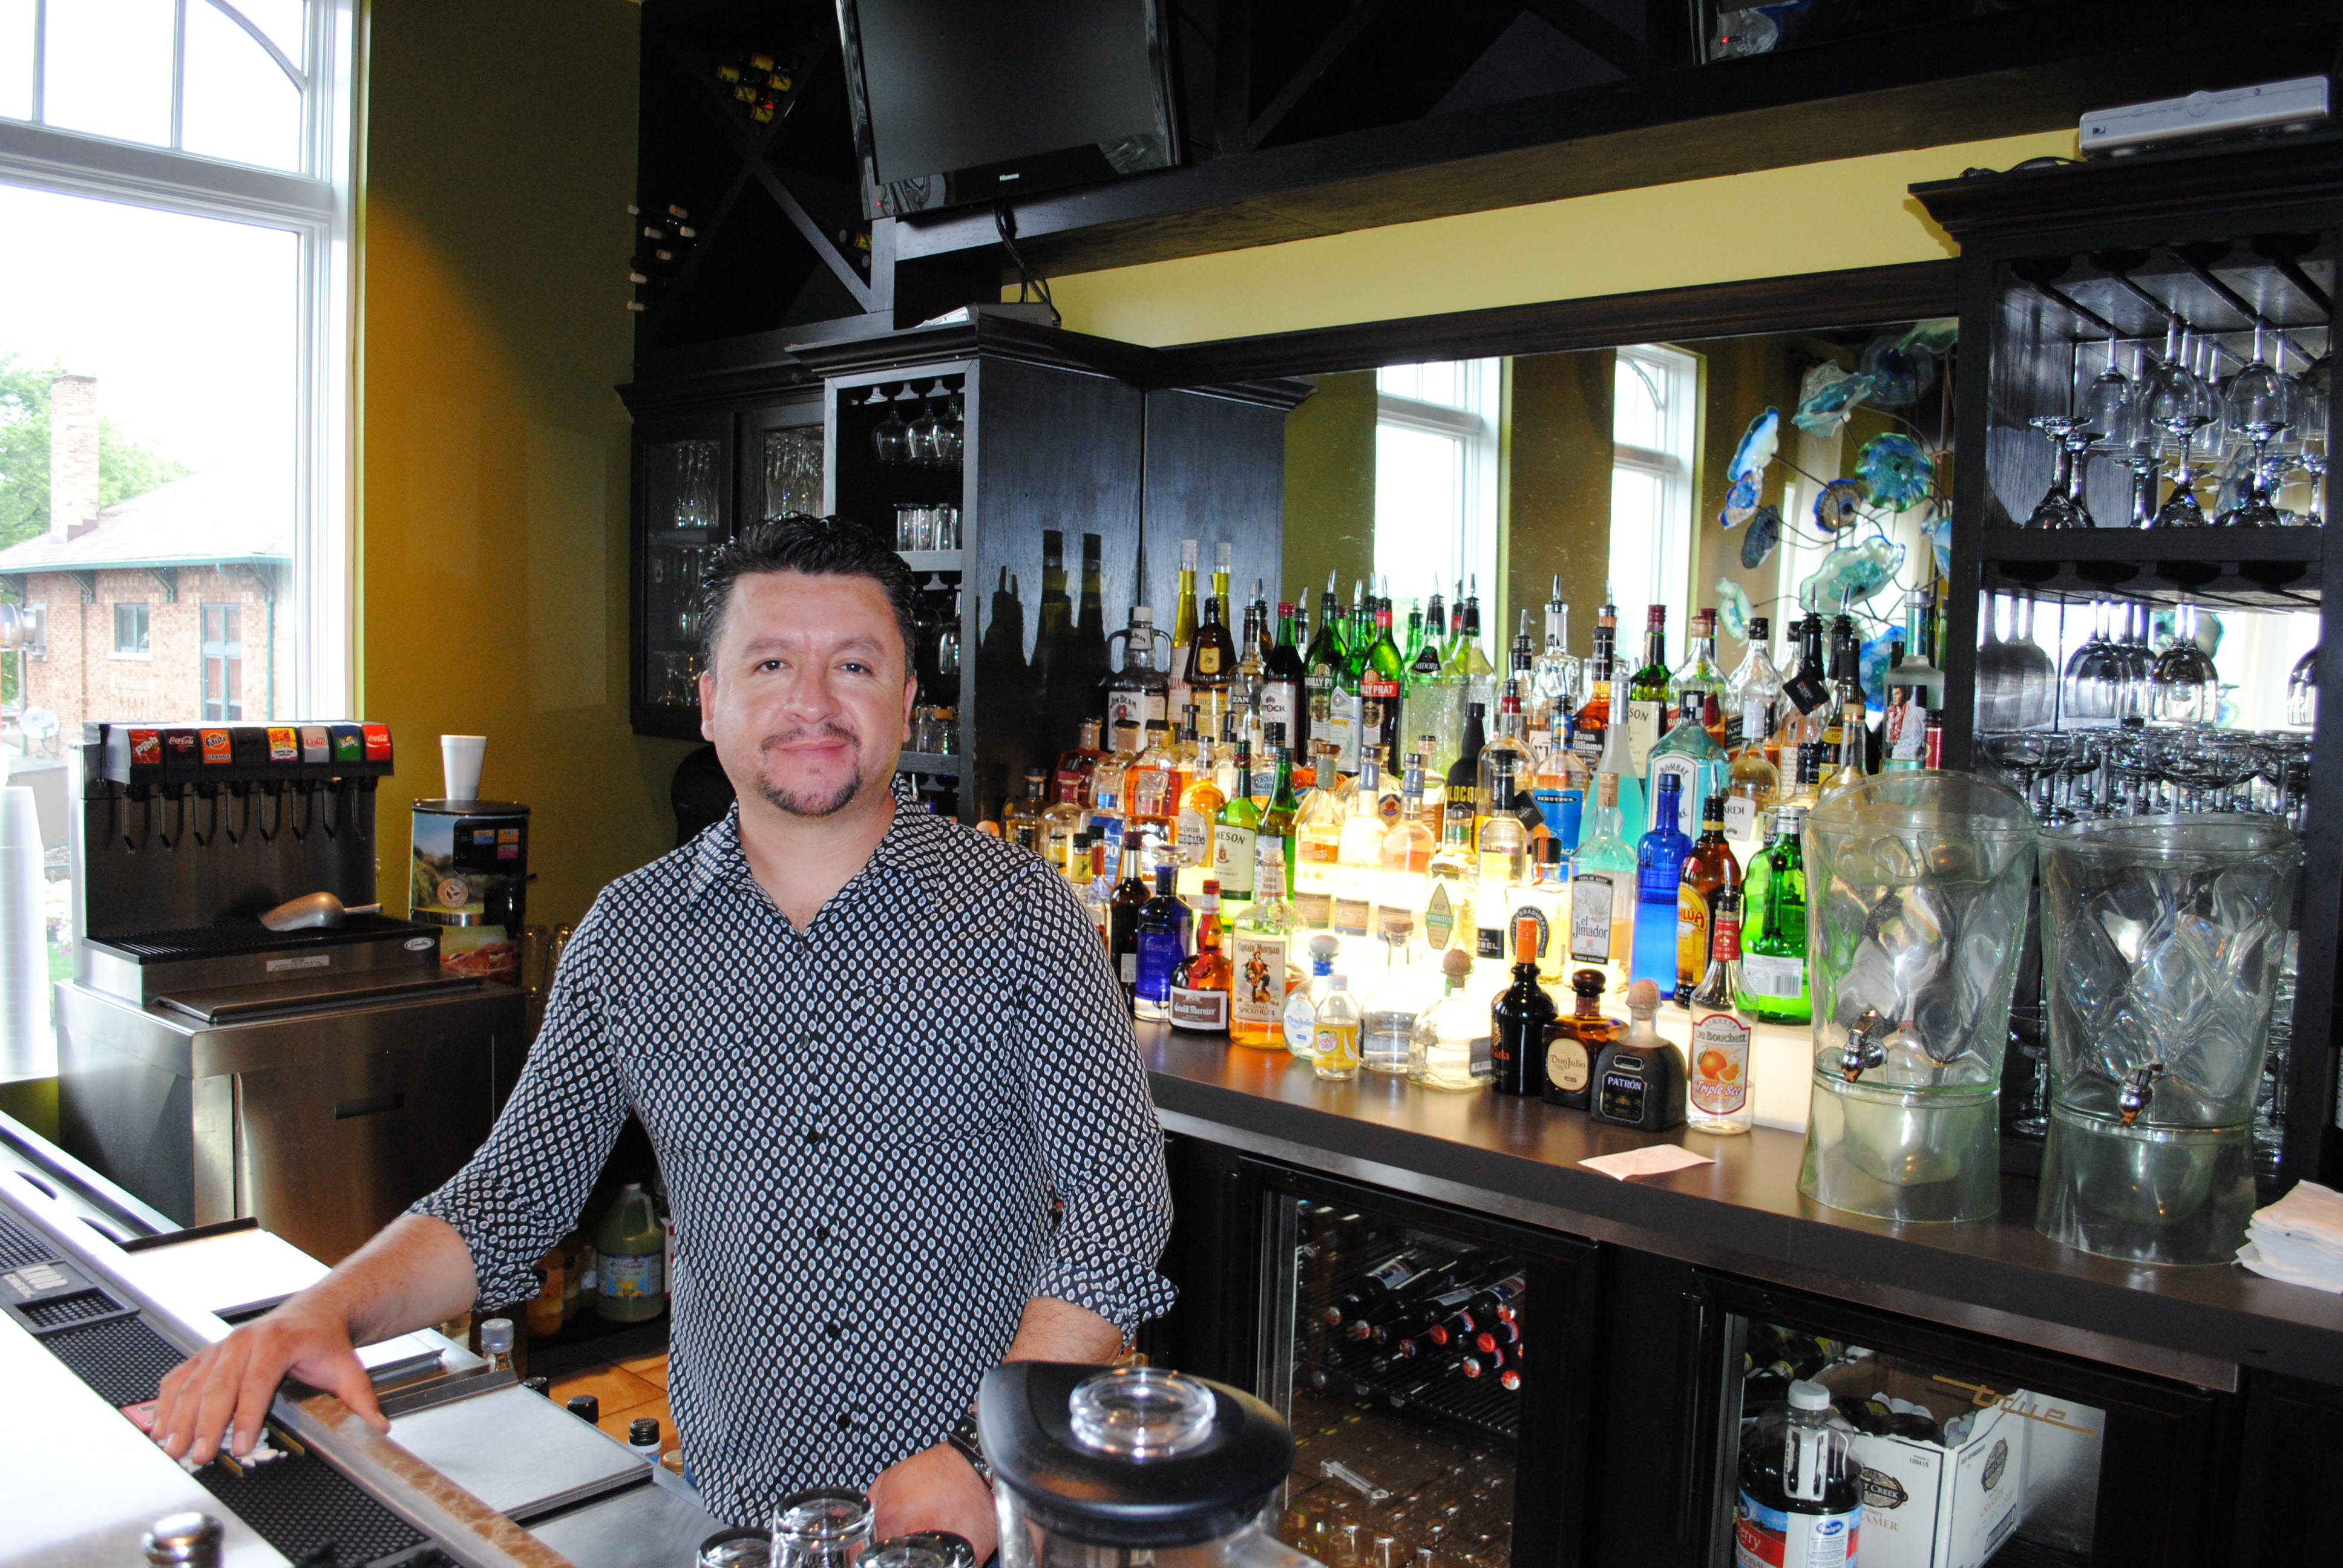 """Owner of Agave, Alejandro Hernadez, says his restaurant is """"all good"""" now. (Photo by Zach Ross)"""